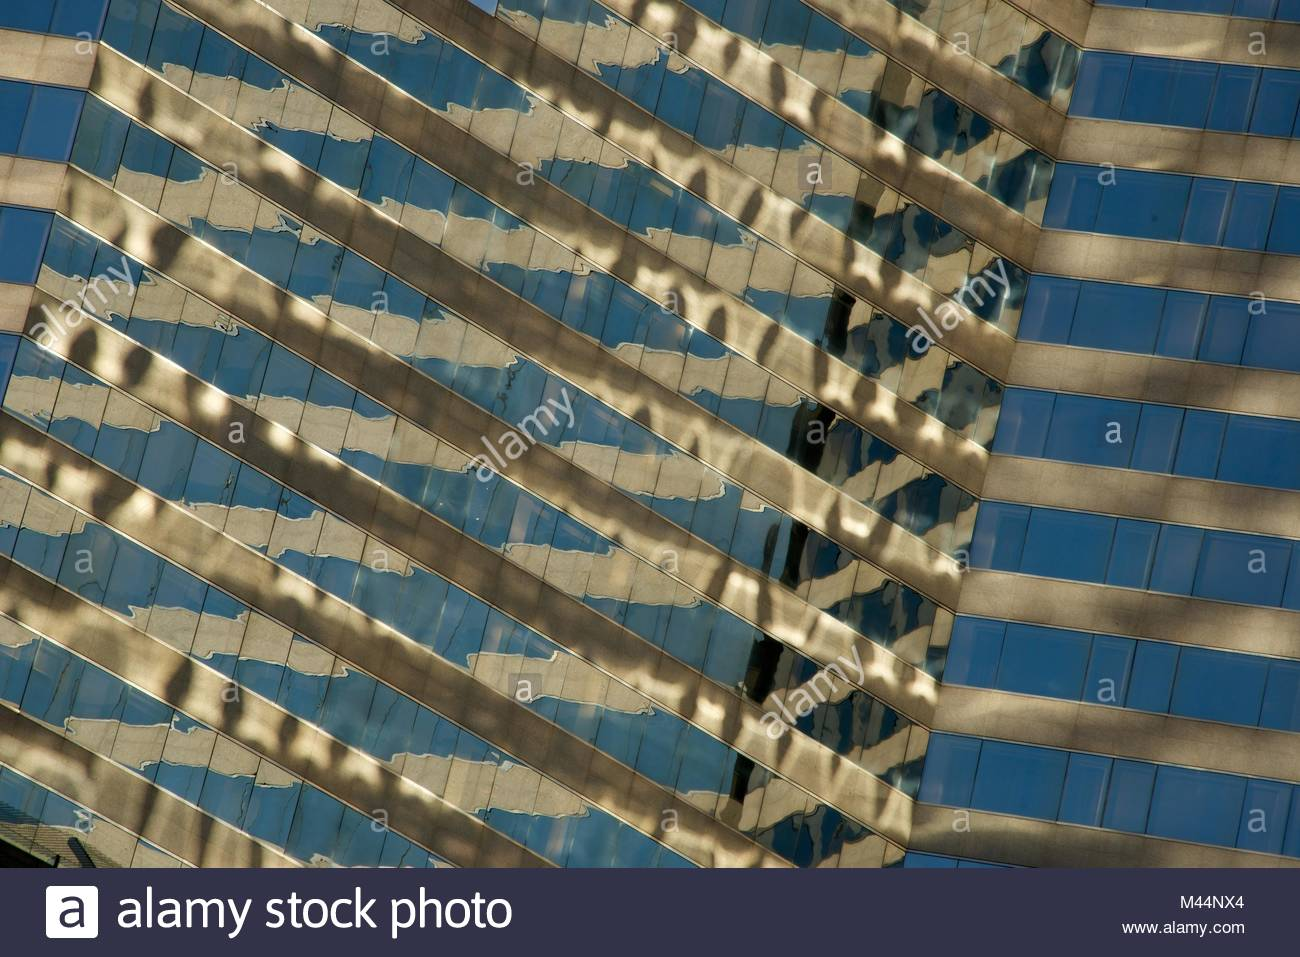 Angled view of close-up of skyscraper reflections - Stock Image